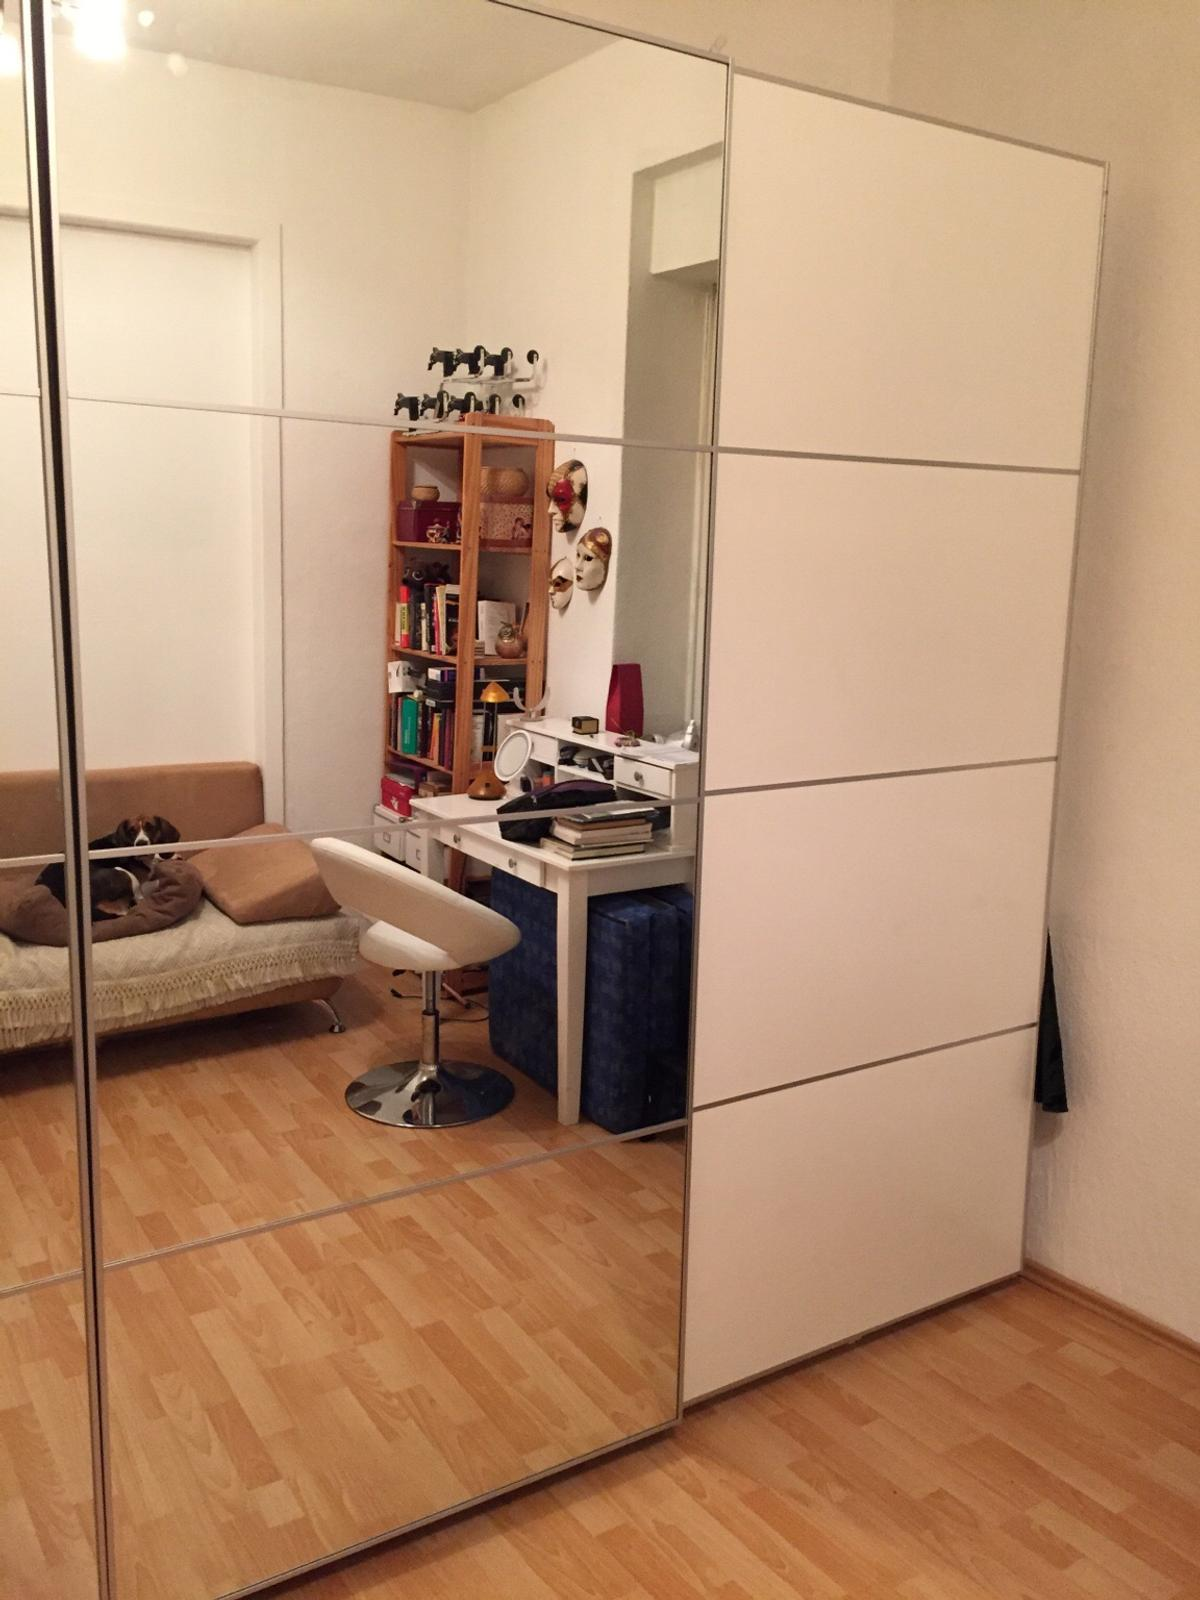 Ikea Pax 4m 2x2m Schiebeturen 800 F Beide In 63065 Offenbach Am Main For 500 00 For Sale Shpock